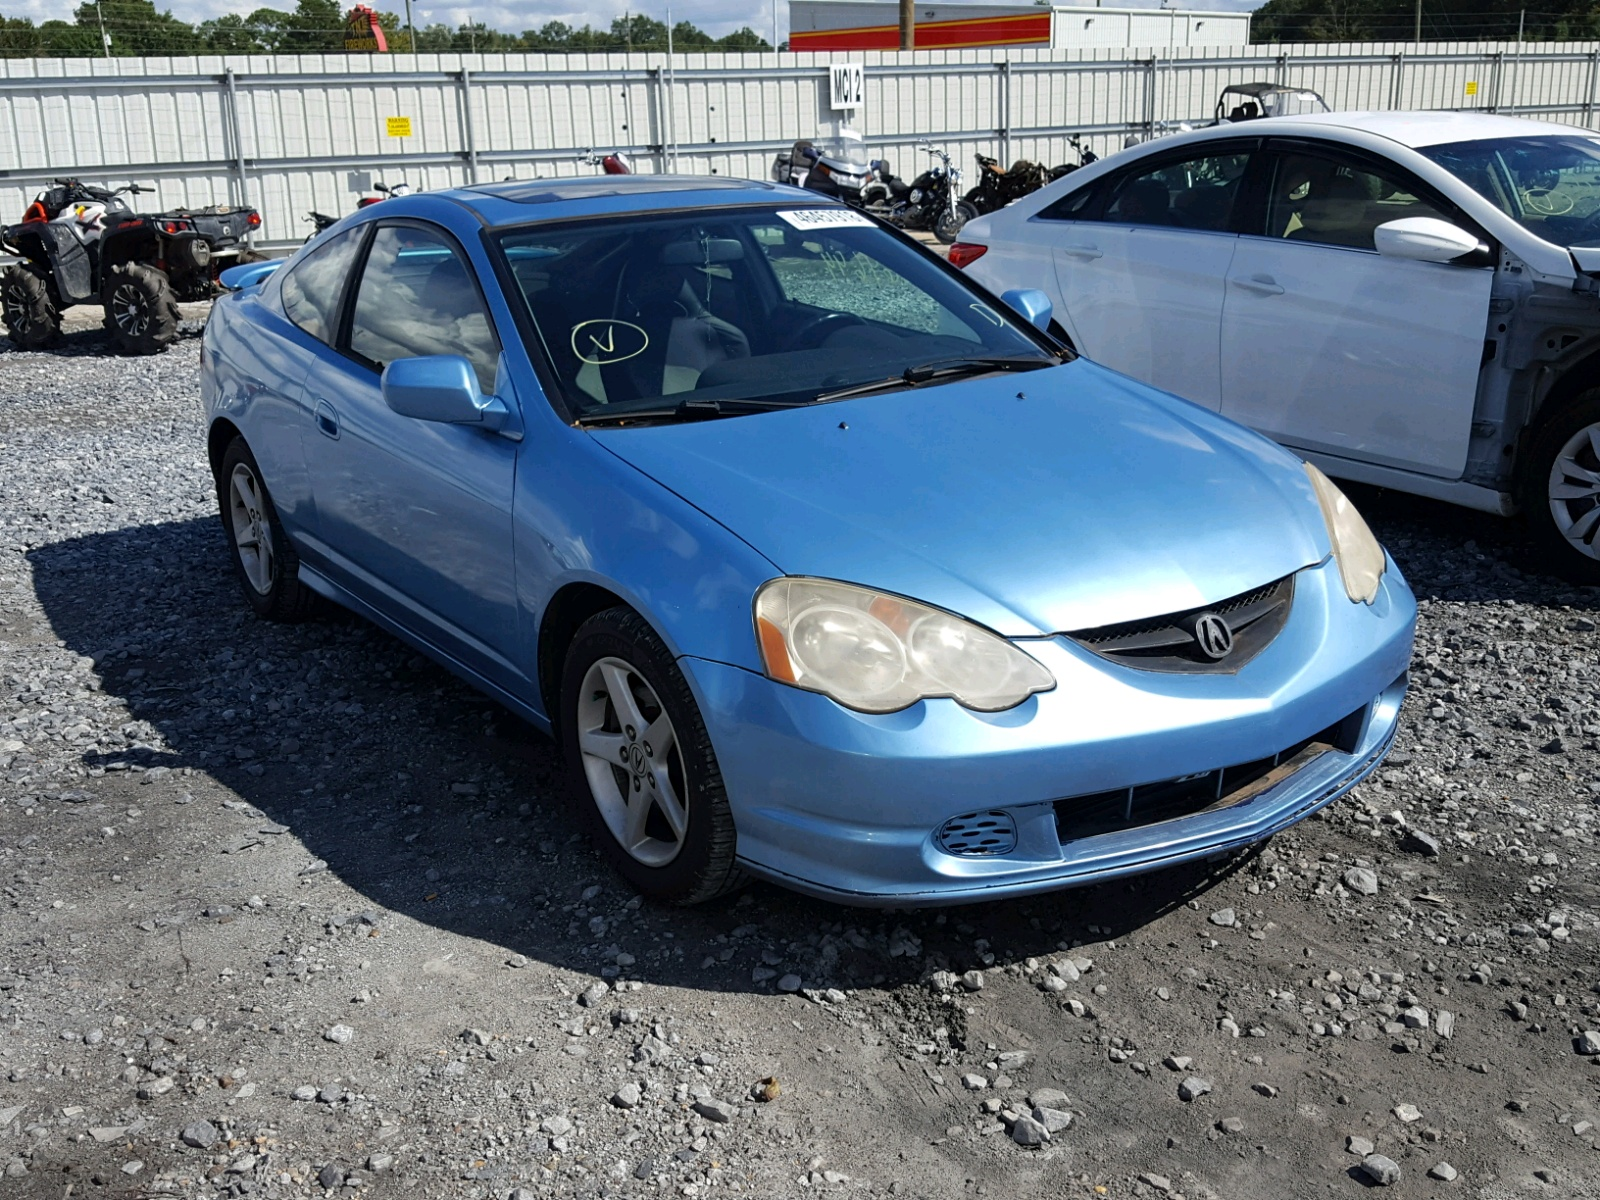 Acura RSX TYPES For Sale At Copart Montgomery AL Lot - Acura rsx type s for sale